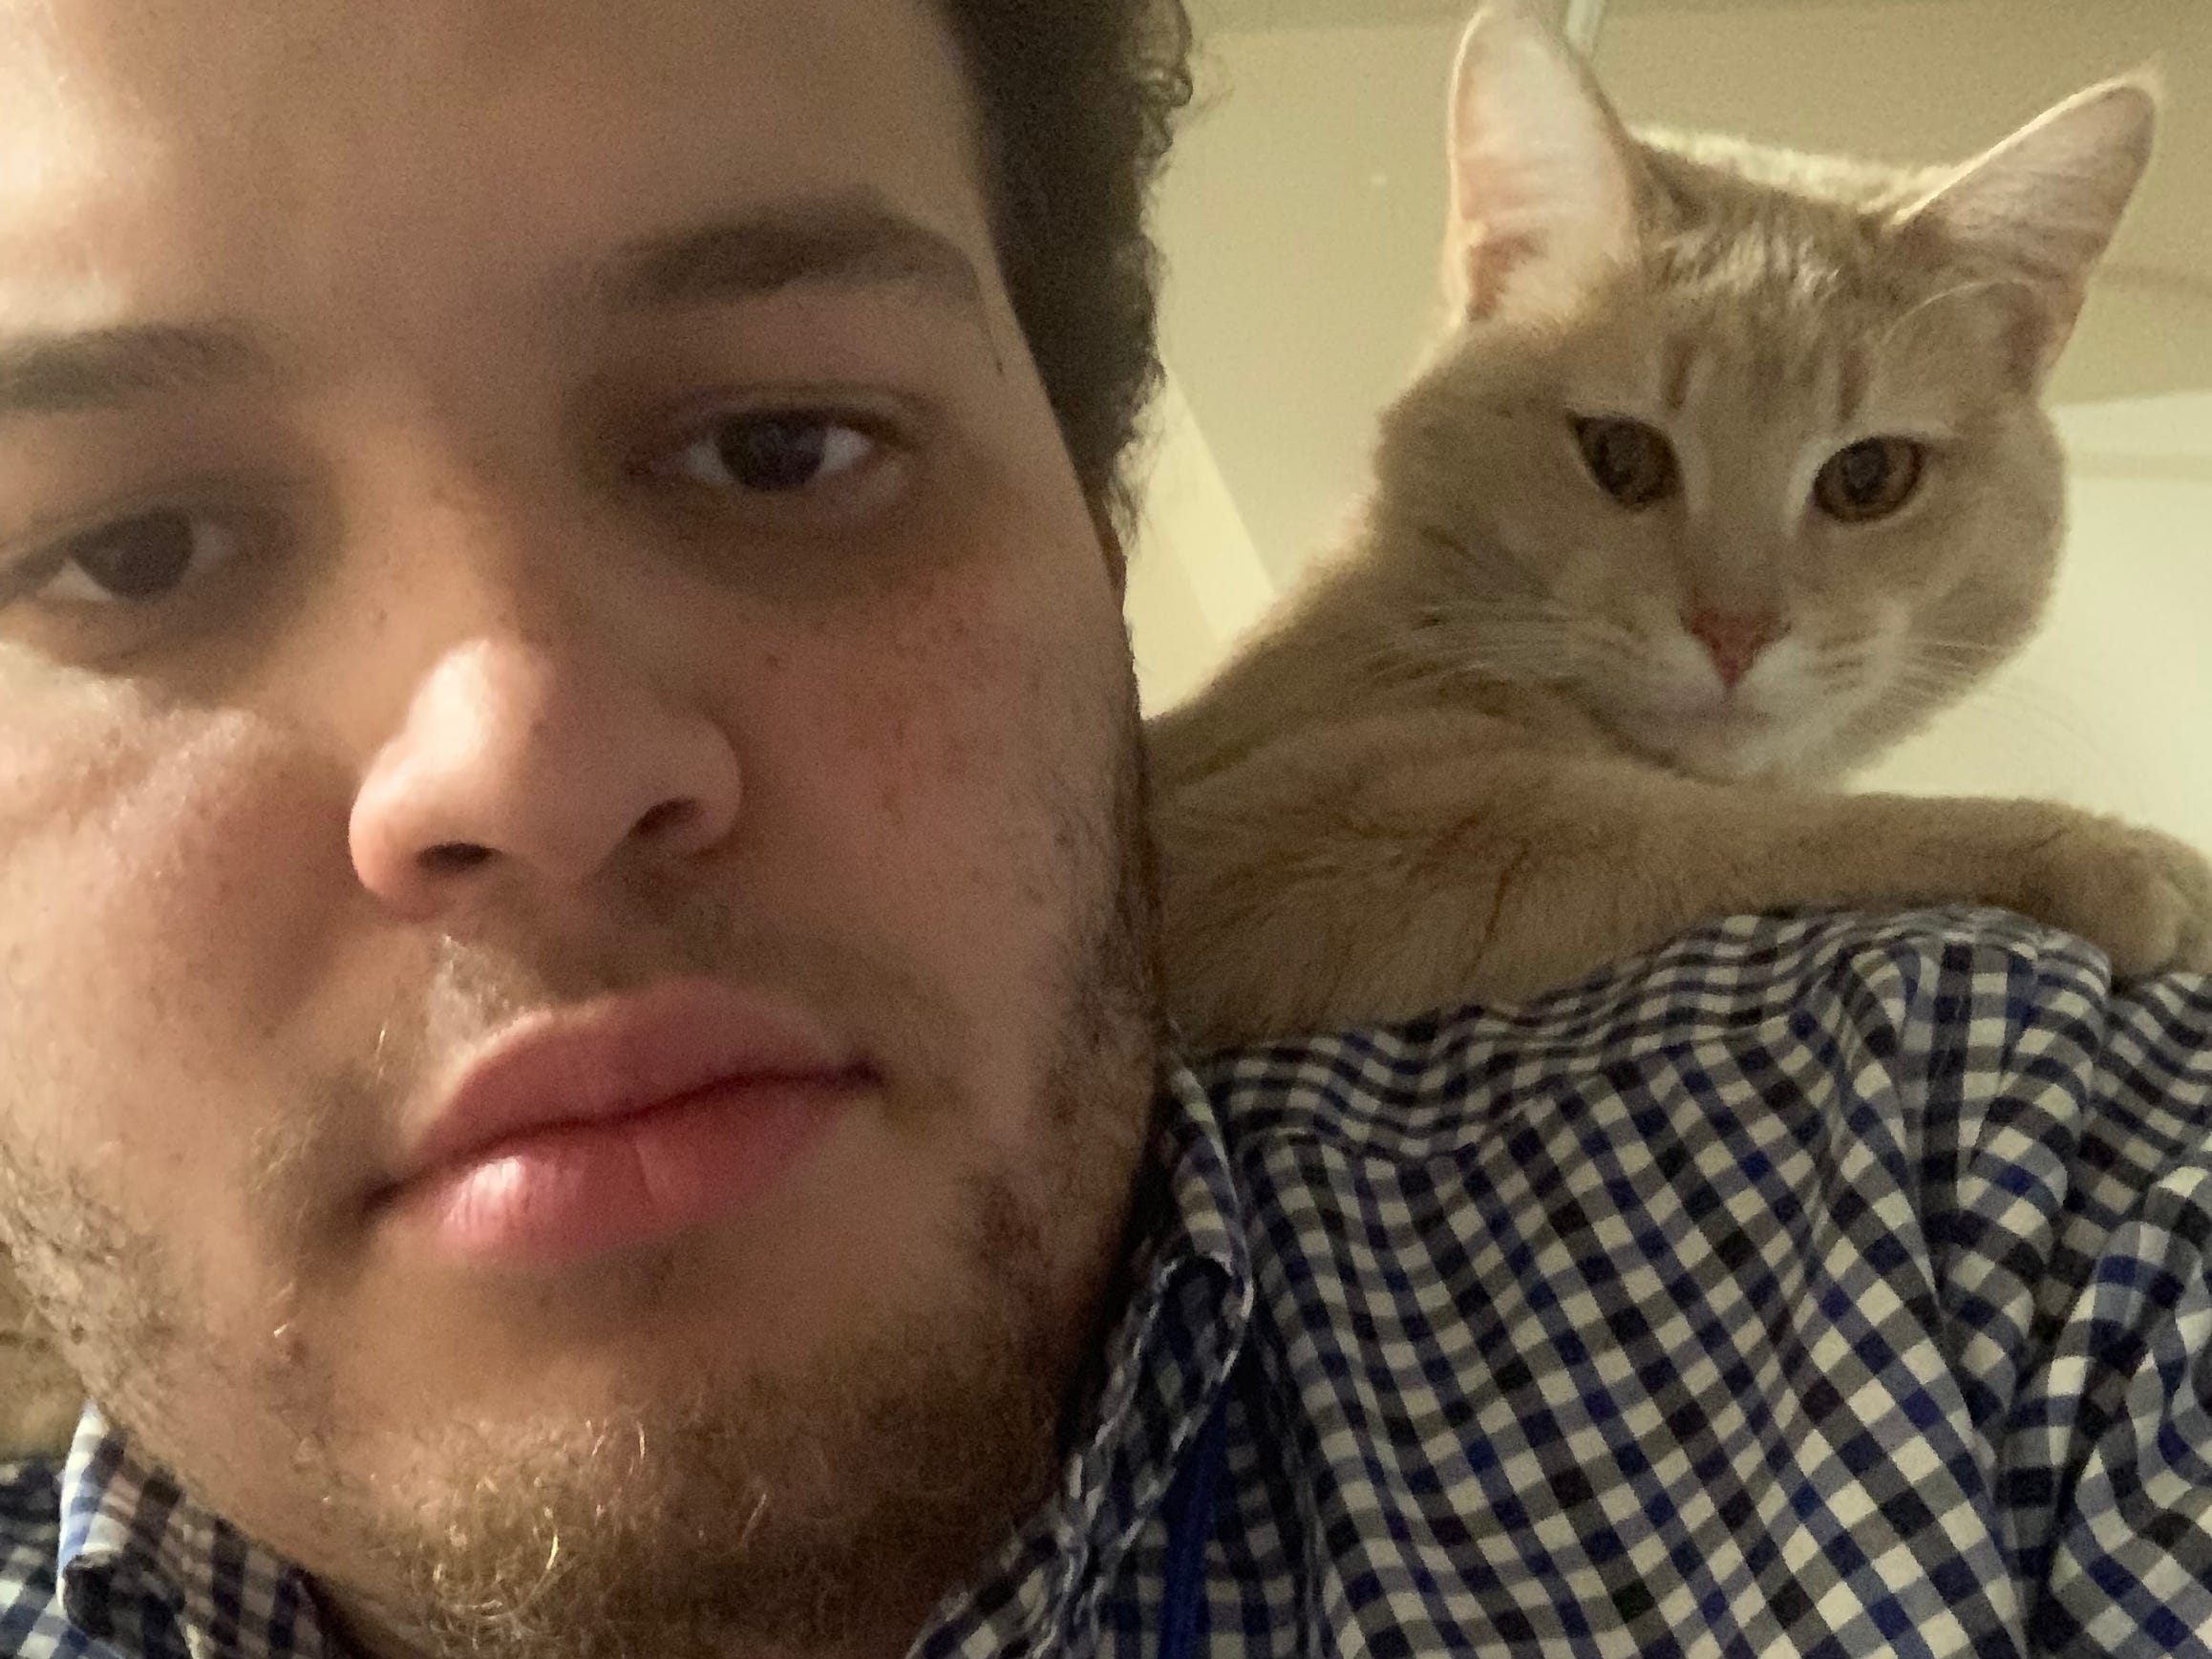 Not even a year old, Peter the cat already knows he'd rather sit on his owner Tyler Davis' shoulders while he's getting ready than stand next to him. Davis is a breaking news reporter.